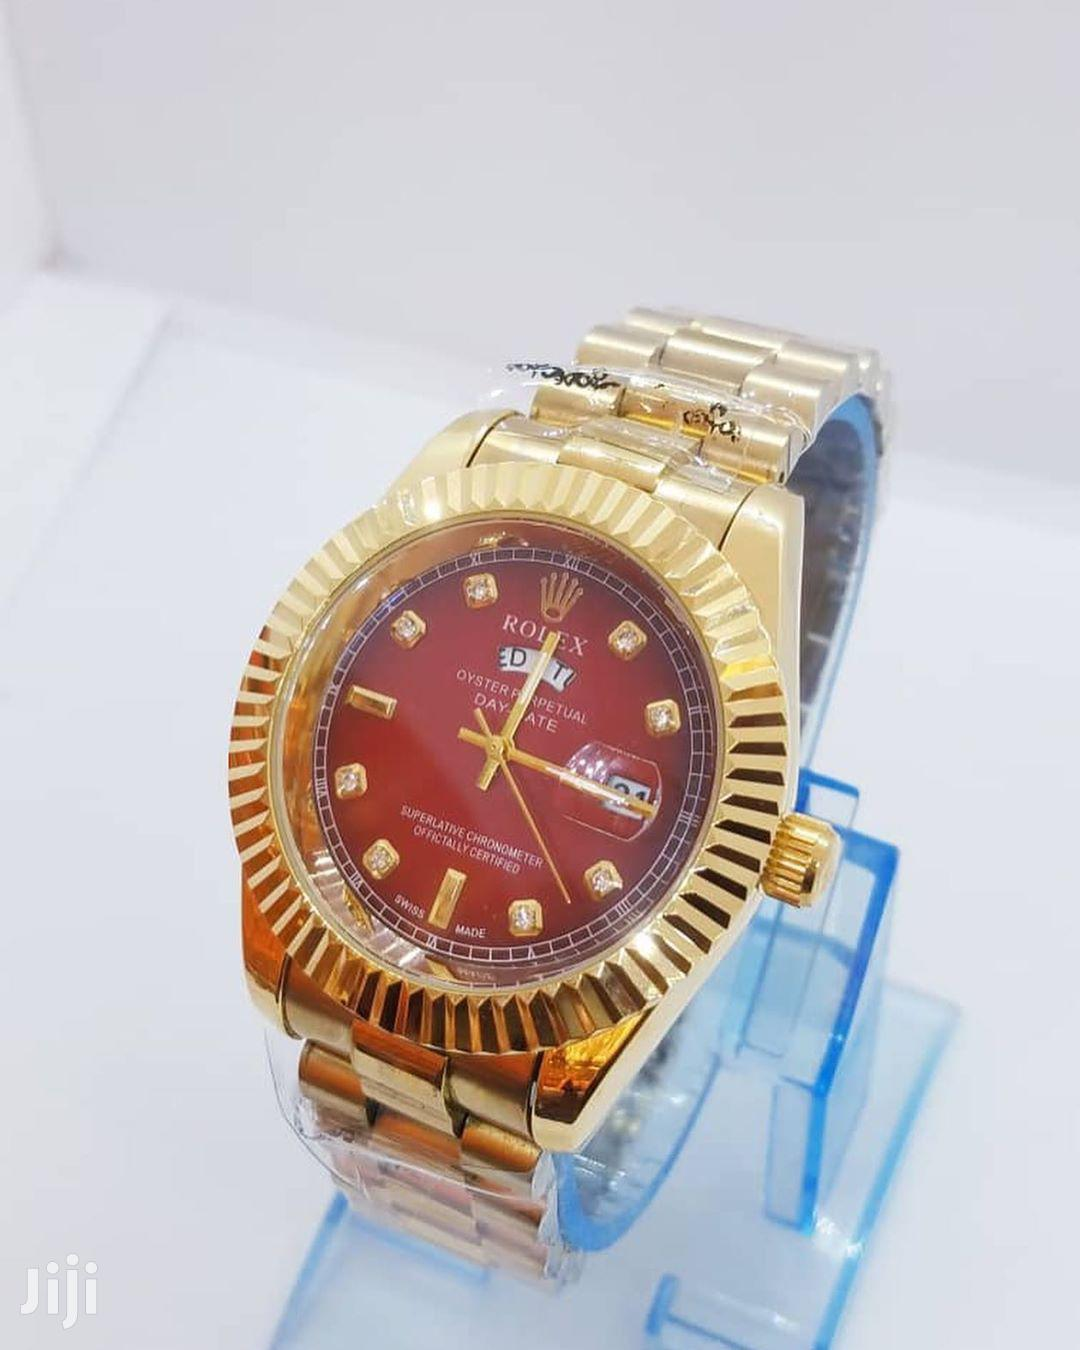 ROLEX Watches Original.